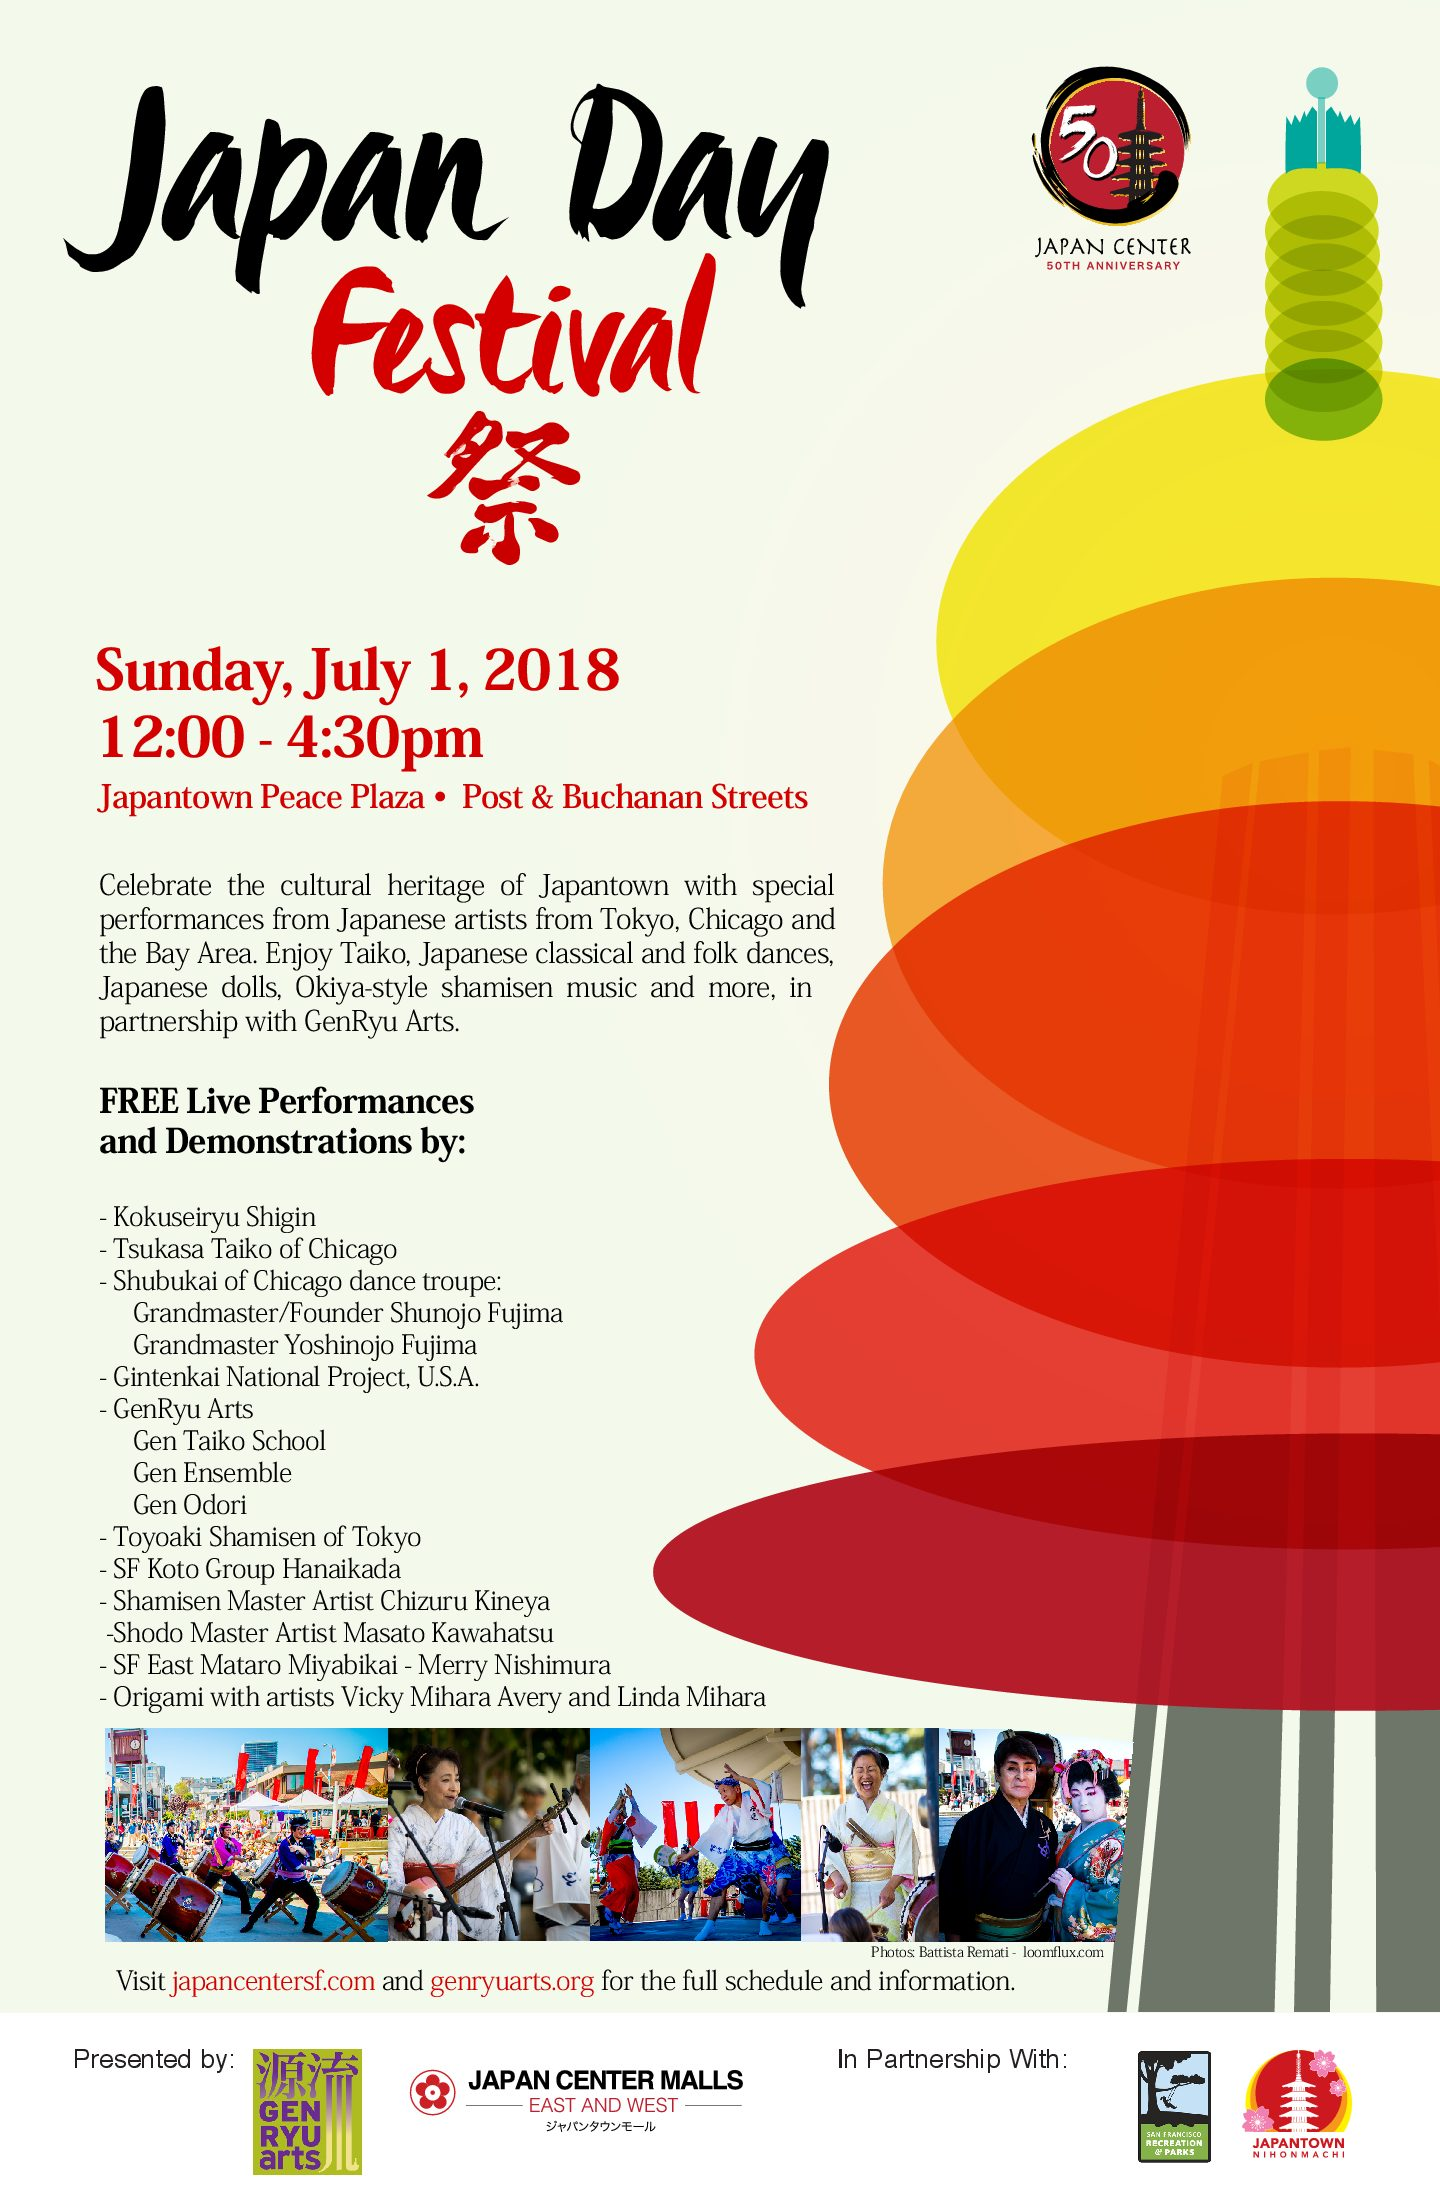 japandayfestival2018-WITH-character-pdf.jpg